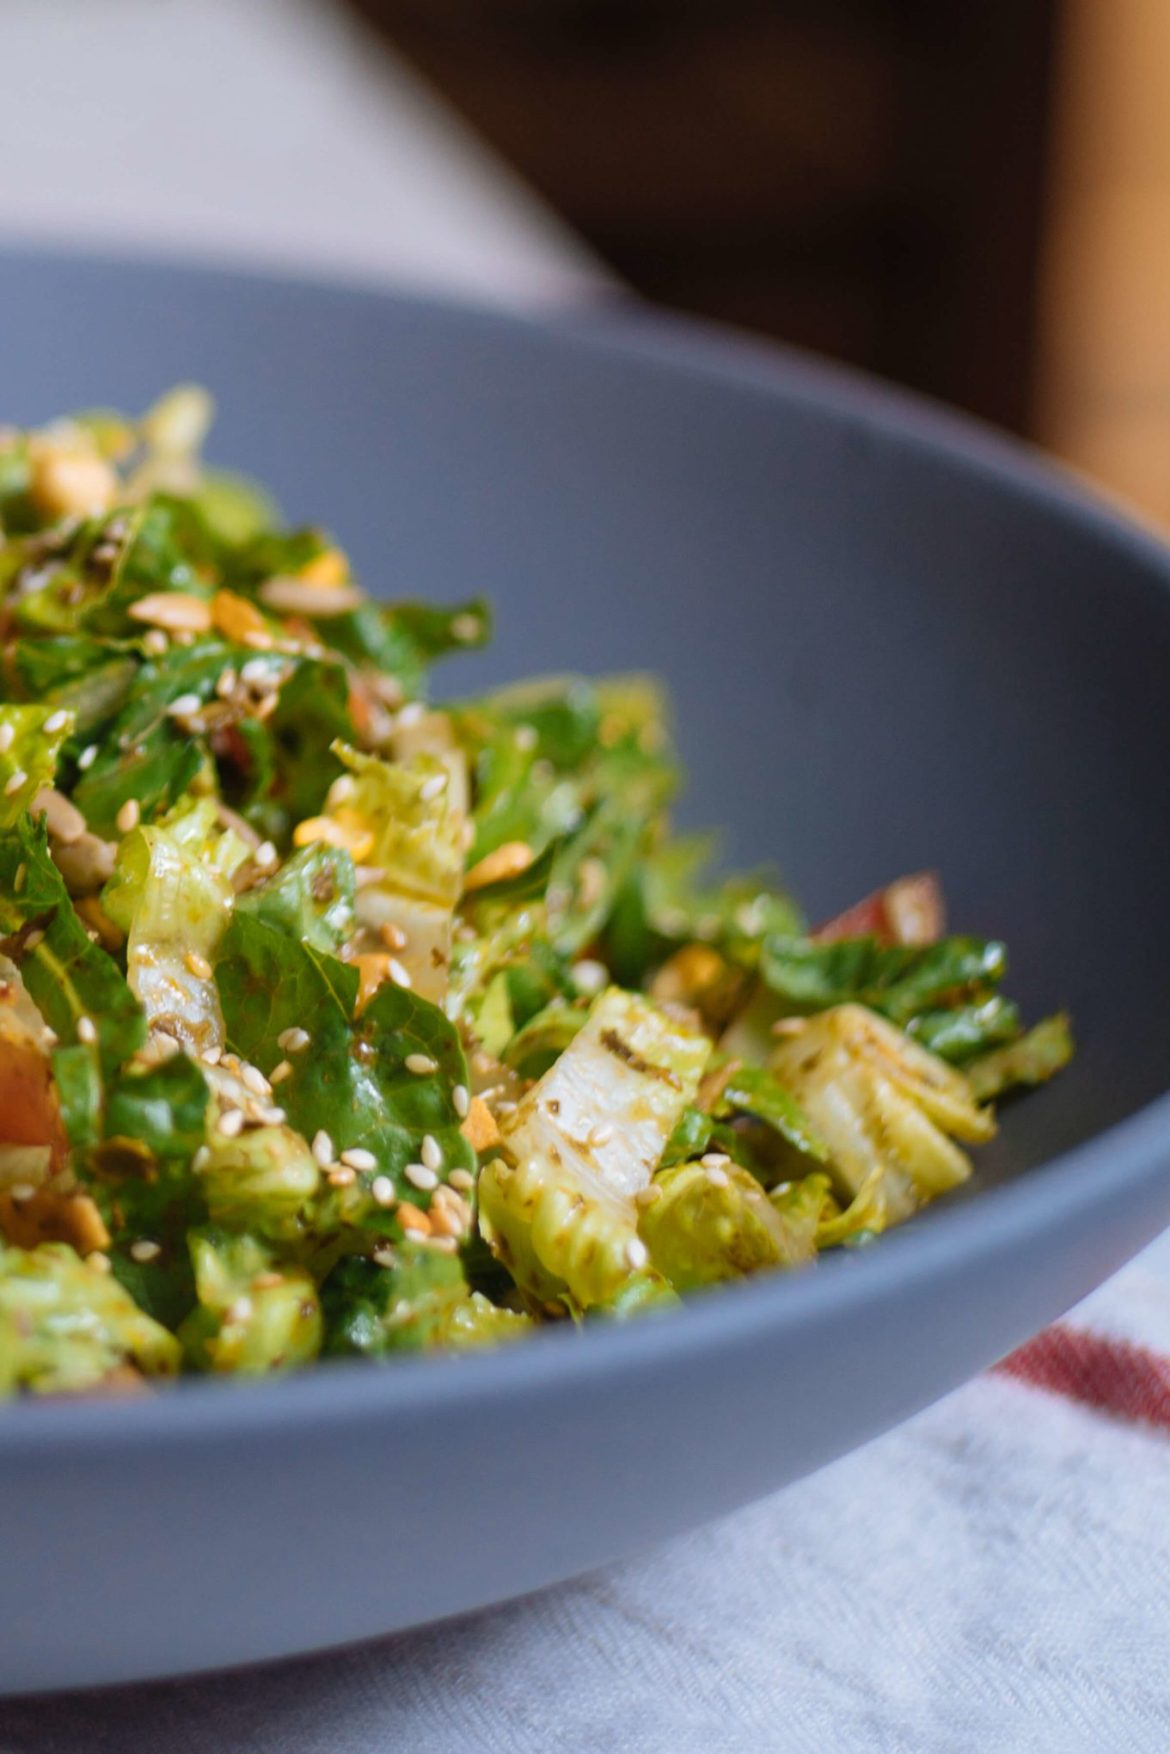 Burma Superstar Fermented Tea Leaf Salad is easy to make using a kit, made by The Taste Edit